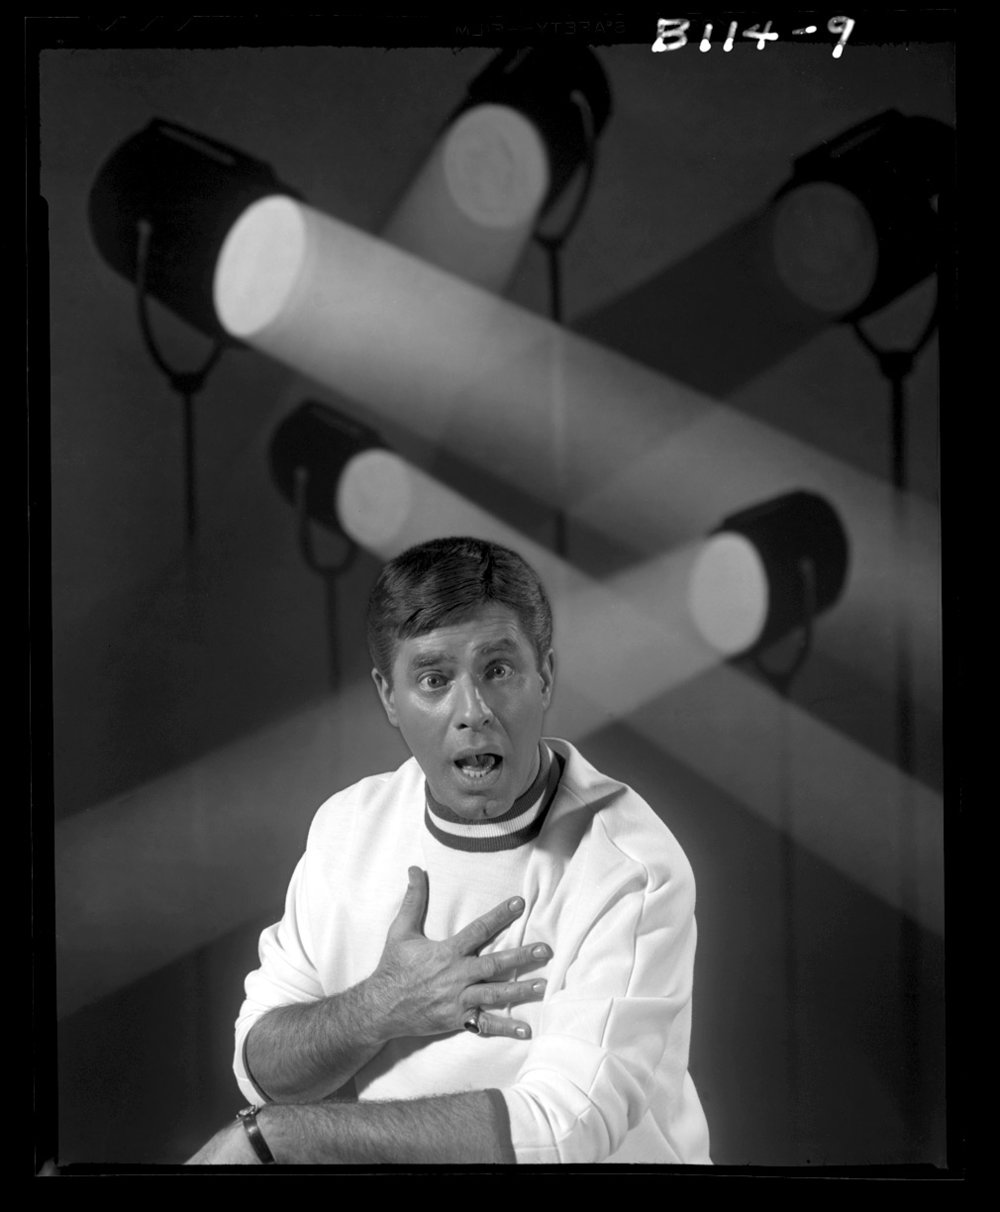 Jerry Lewis c.1965 from original 4x5 negative